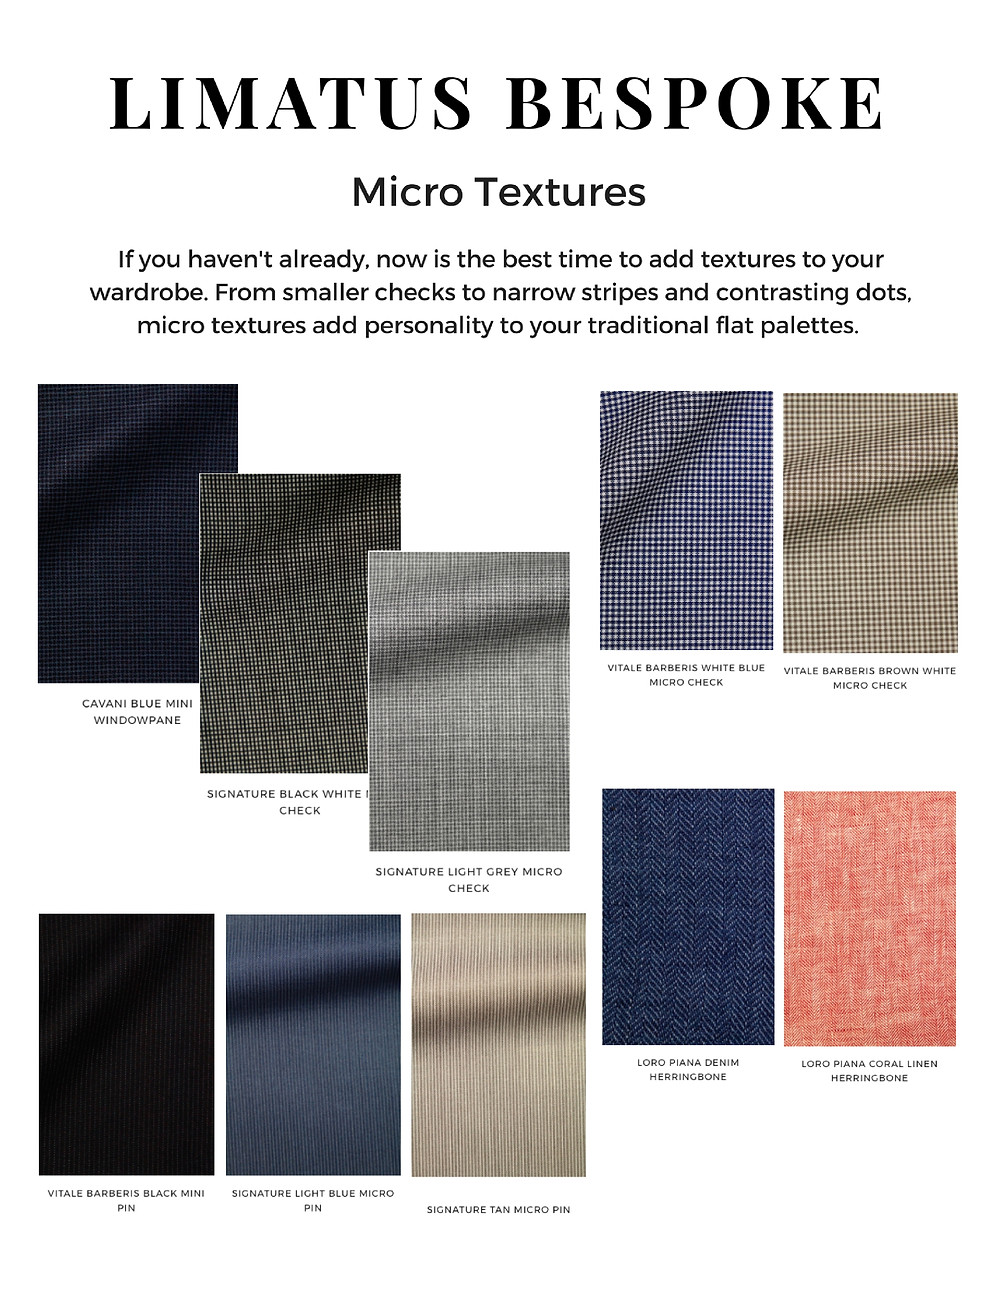 Book an appointment to view our full selection of Micro Textures